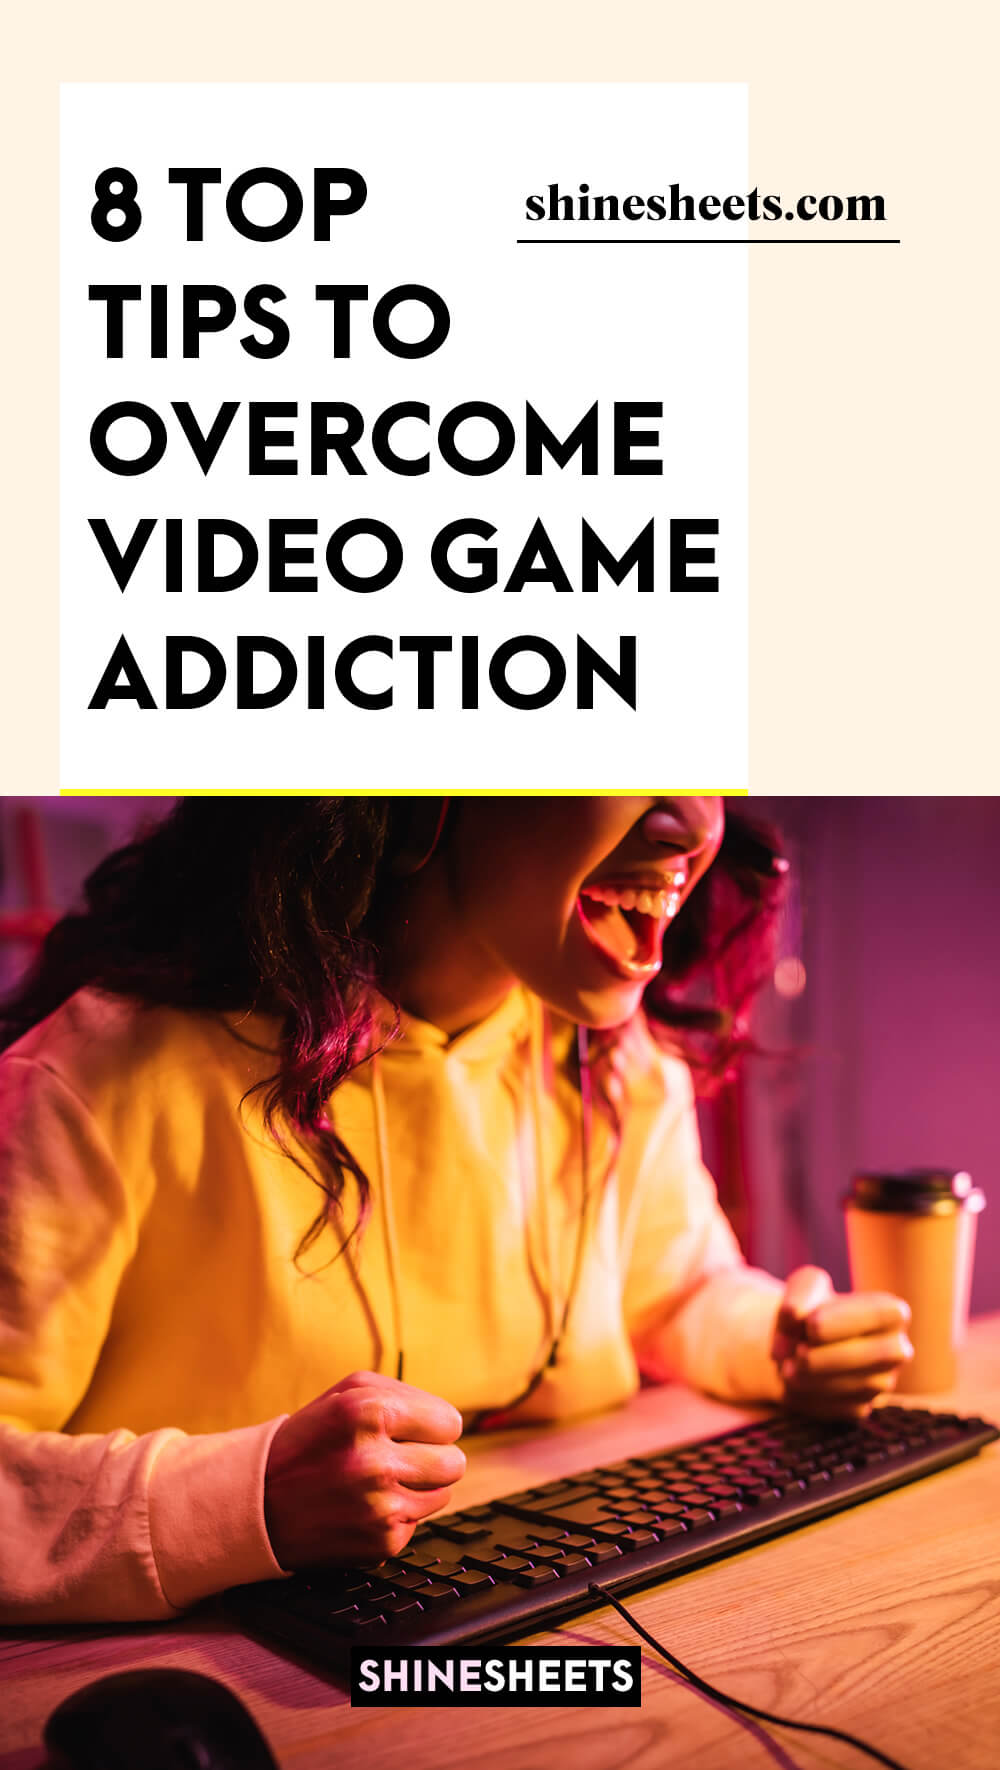 a girl with video game addiction screaming